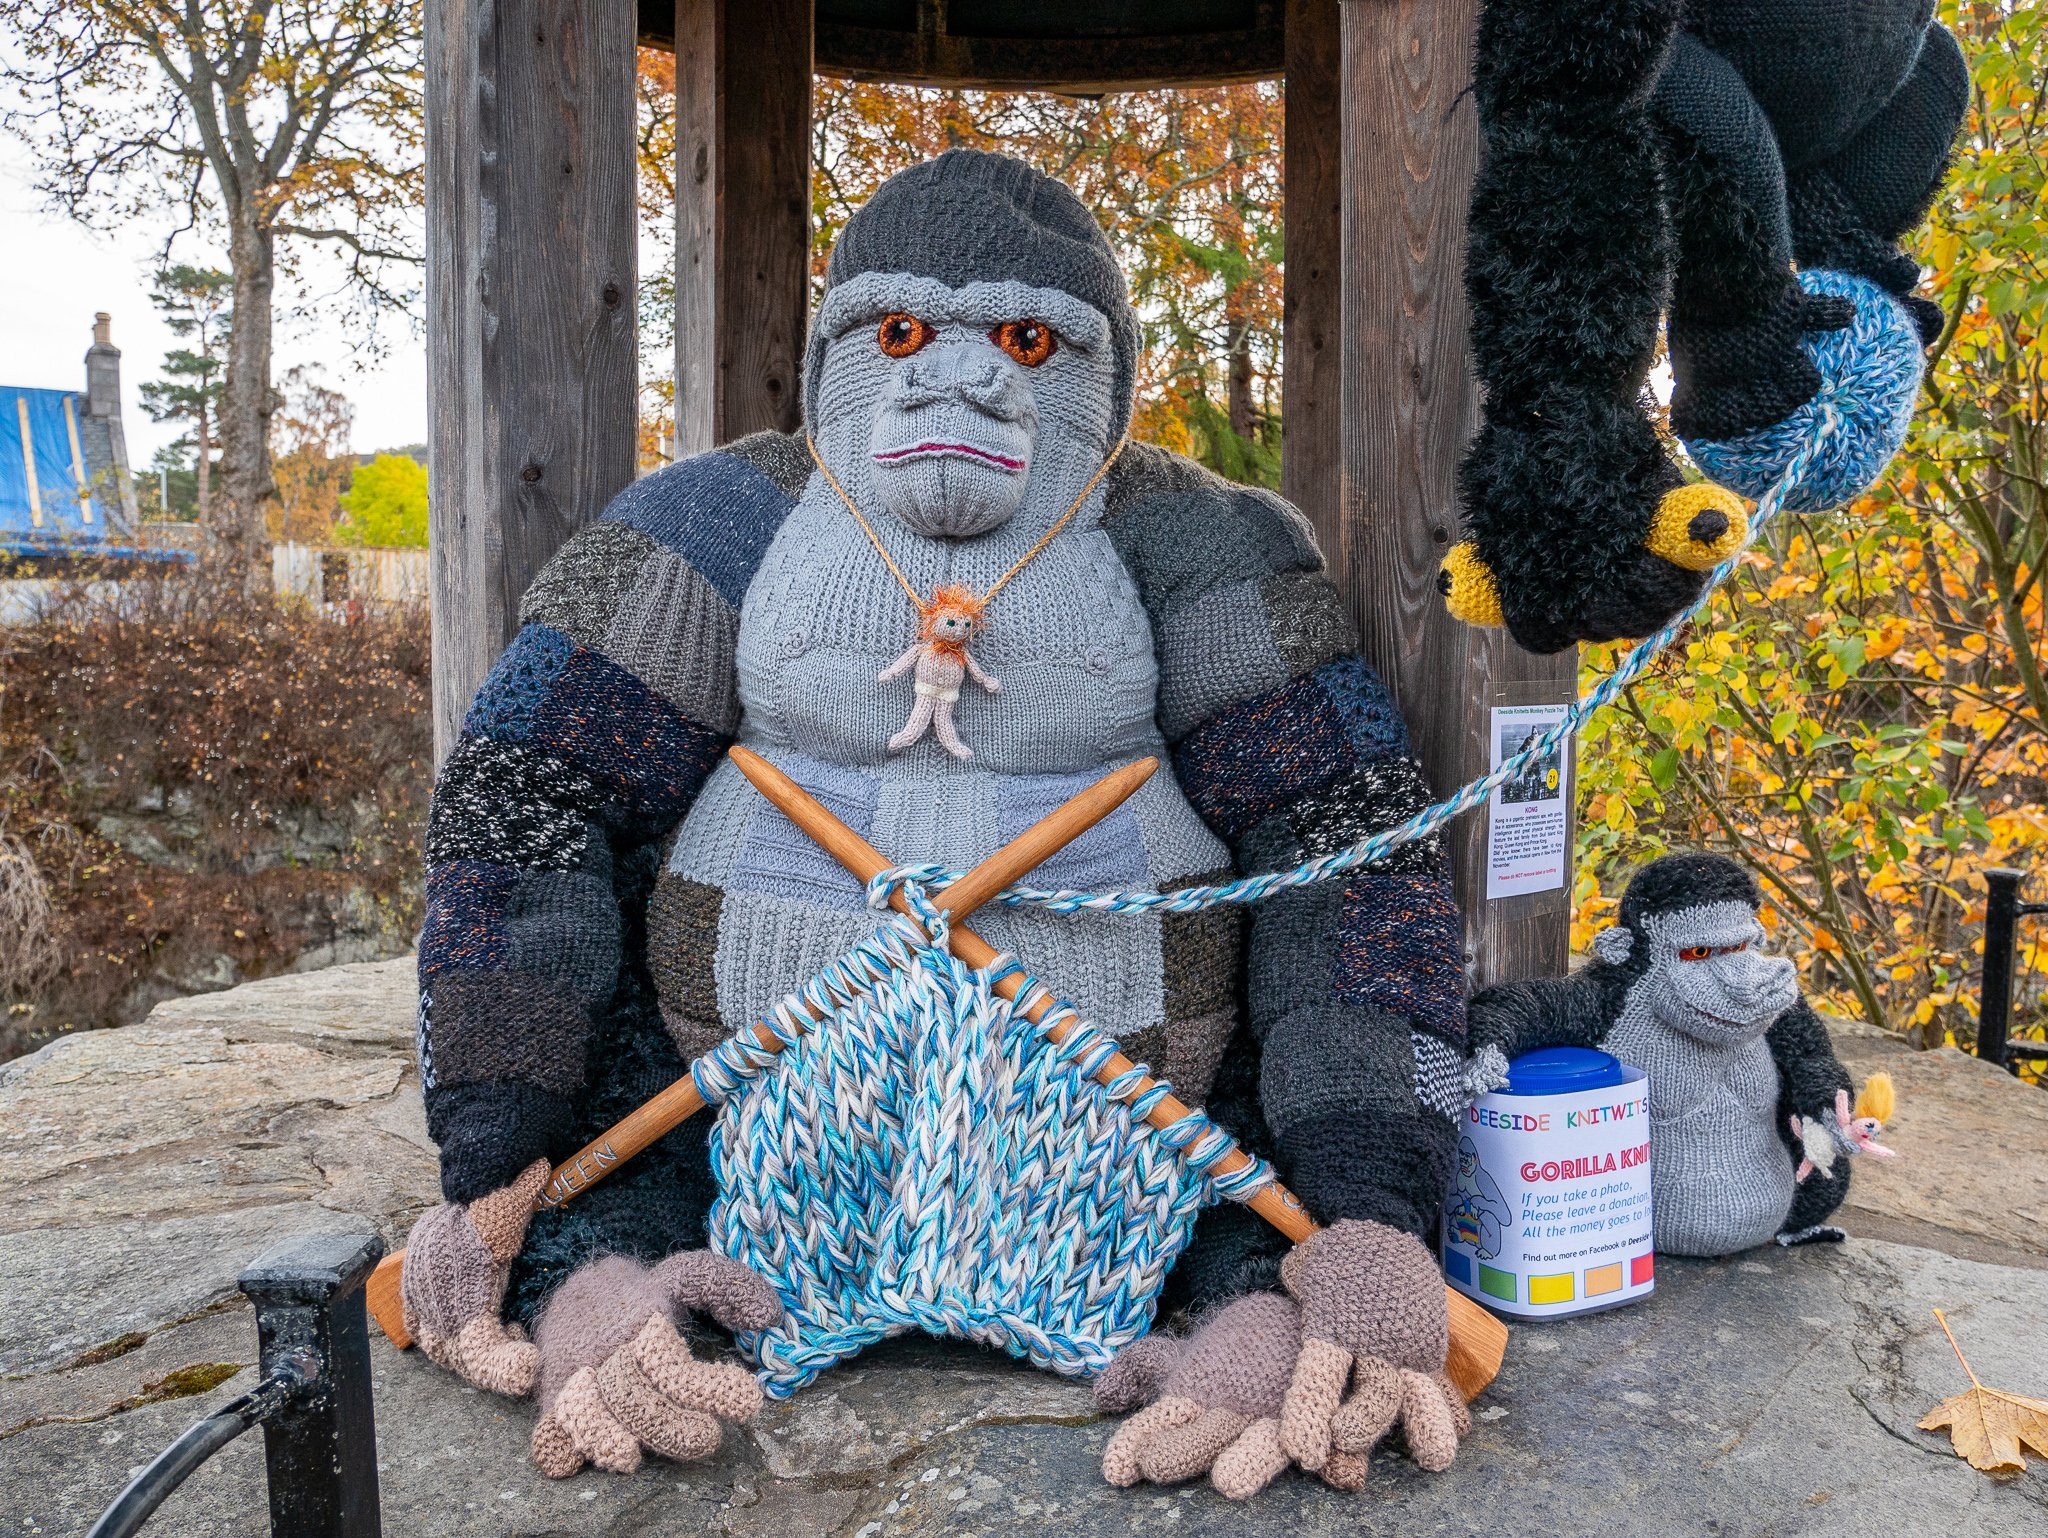 Guerrilla Knitting the Gorilla at Braemar Creative Arts Festival